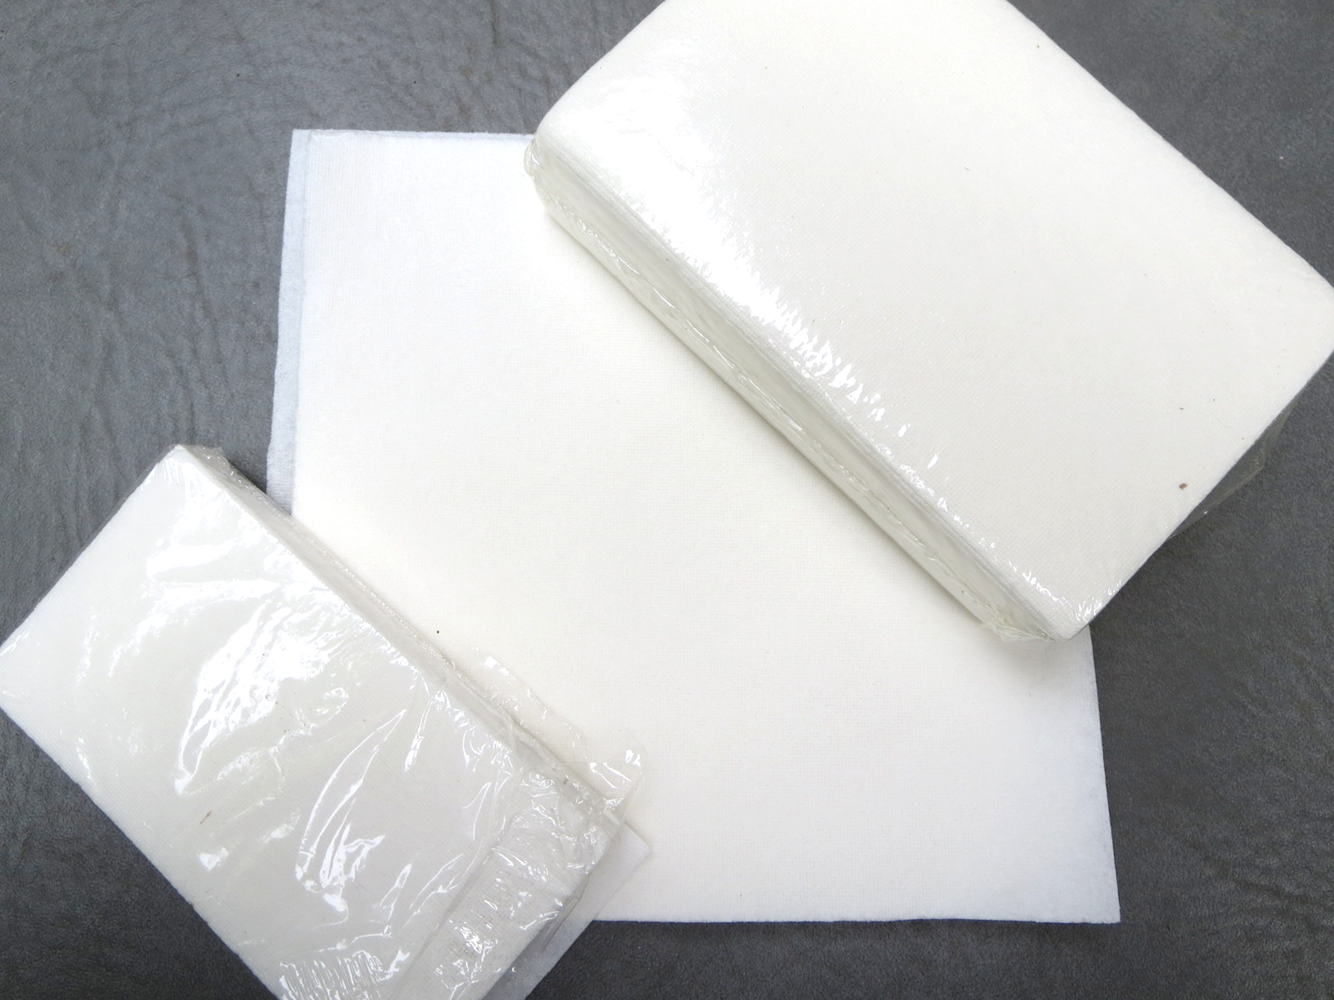 #02-01282CG13 DriMop® Absorber/Solidifier 4-1/4` x 2-1/4` Laminated Paper Sheets